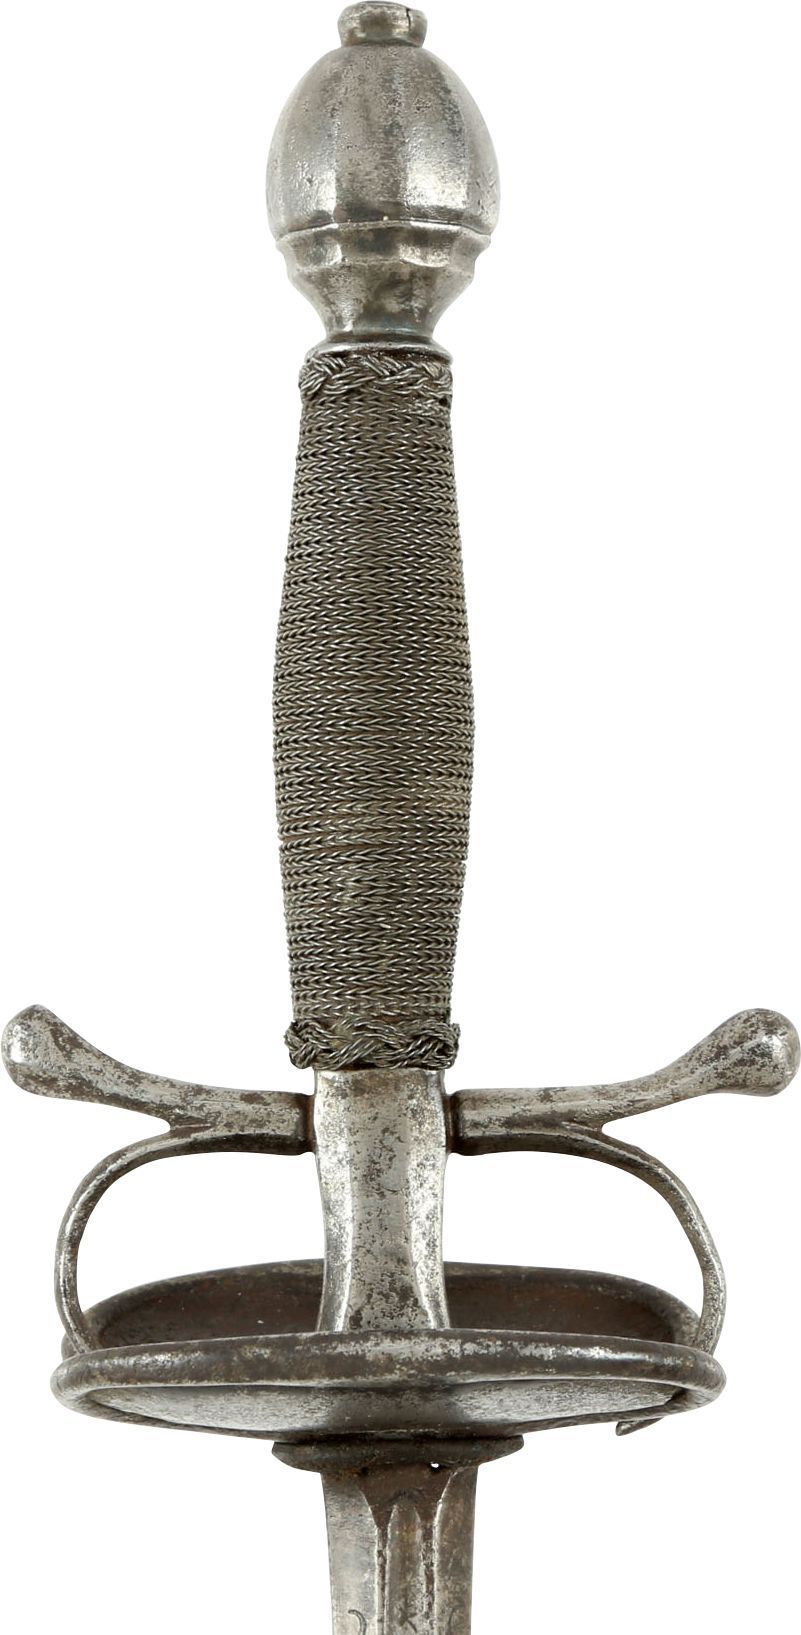 SPANISH TRANSITIONAL/DUELING RAPIER C.1680-1700 - Fagan Arms